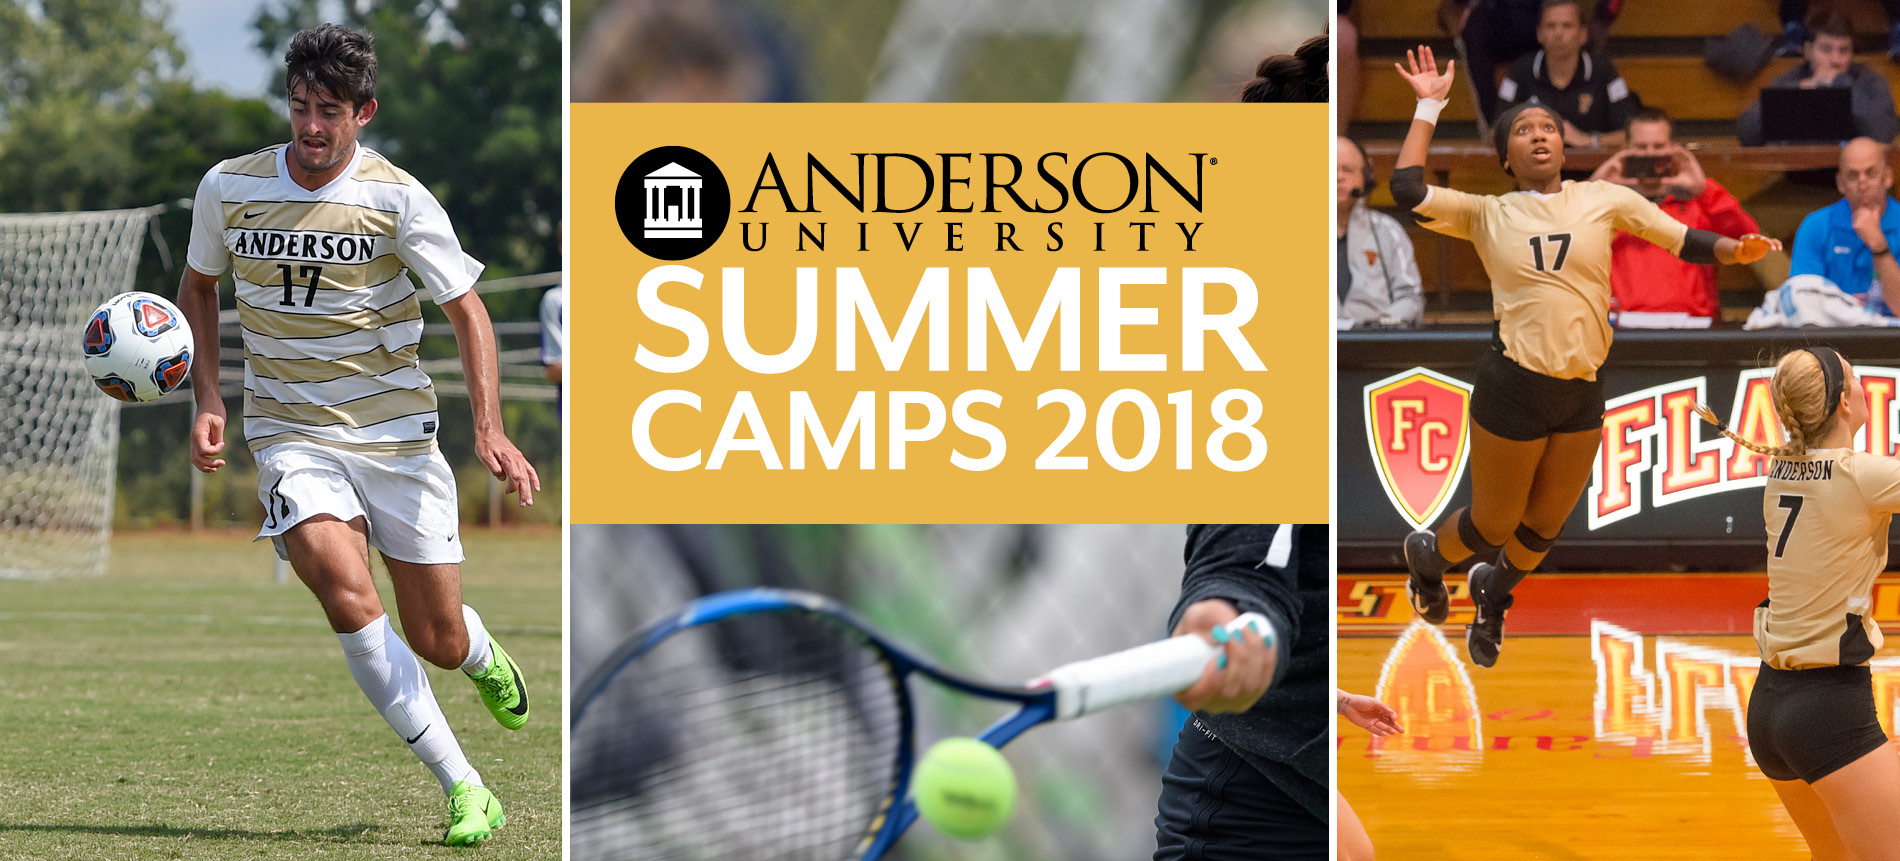 Registration Open for All Summer Camps